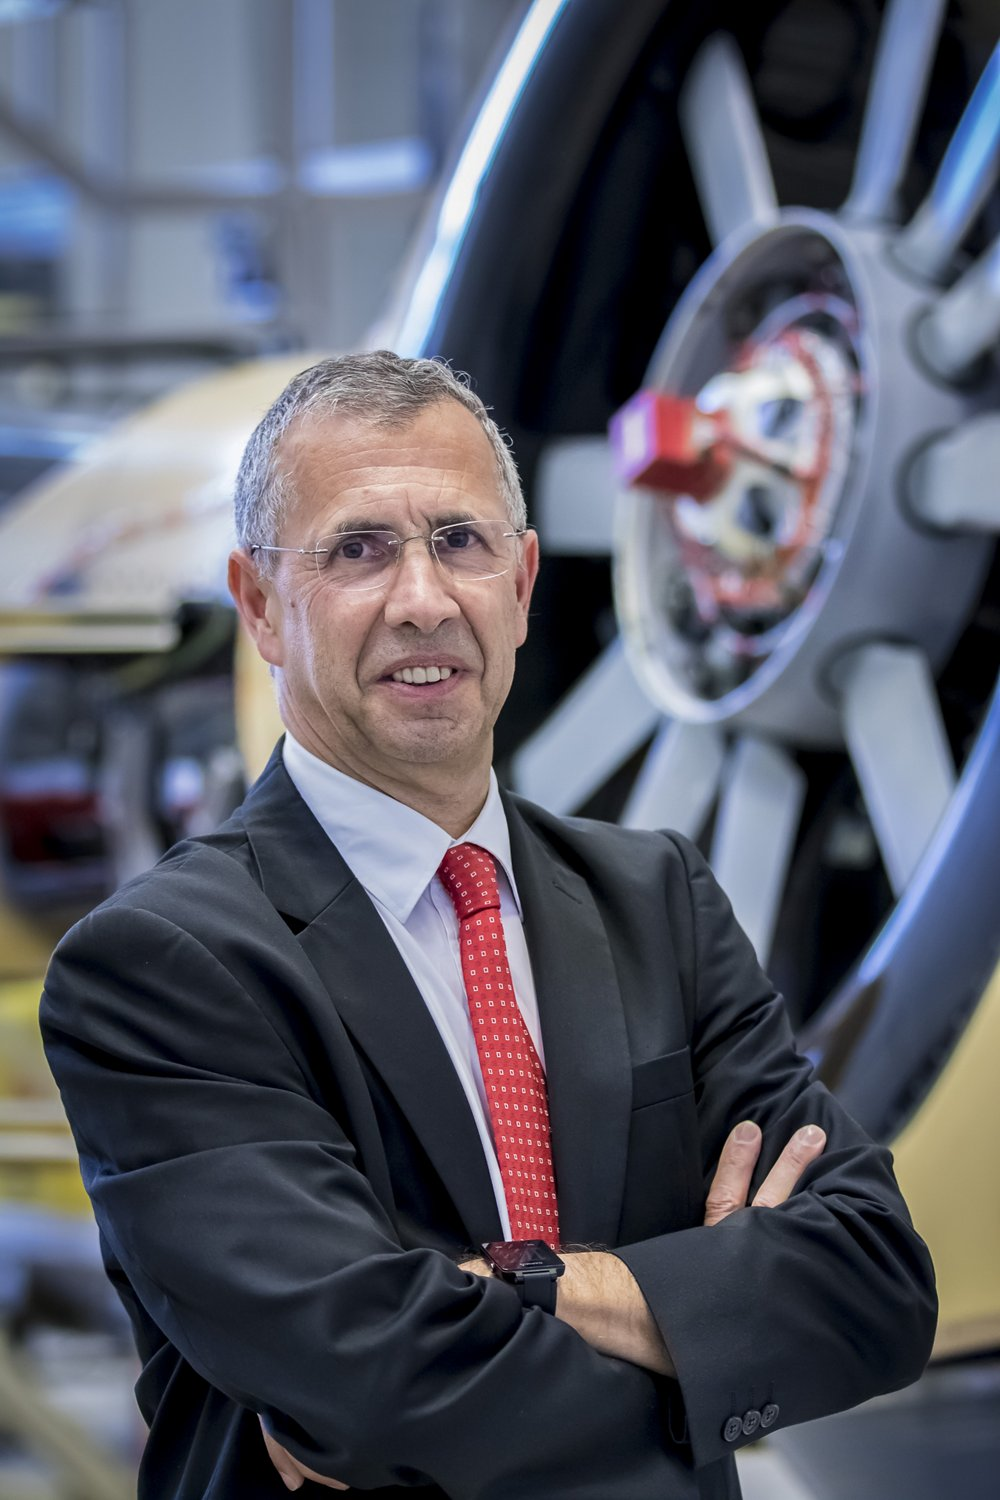 Photo of Alain Flourens, Executive Vice President of Operations at Airbus Helicopters.